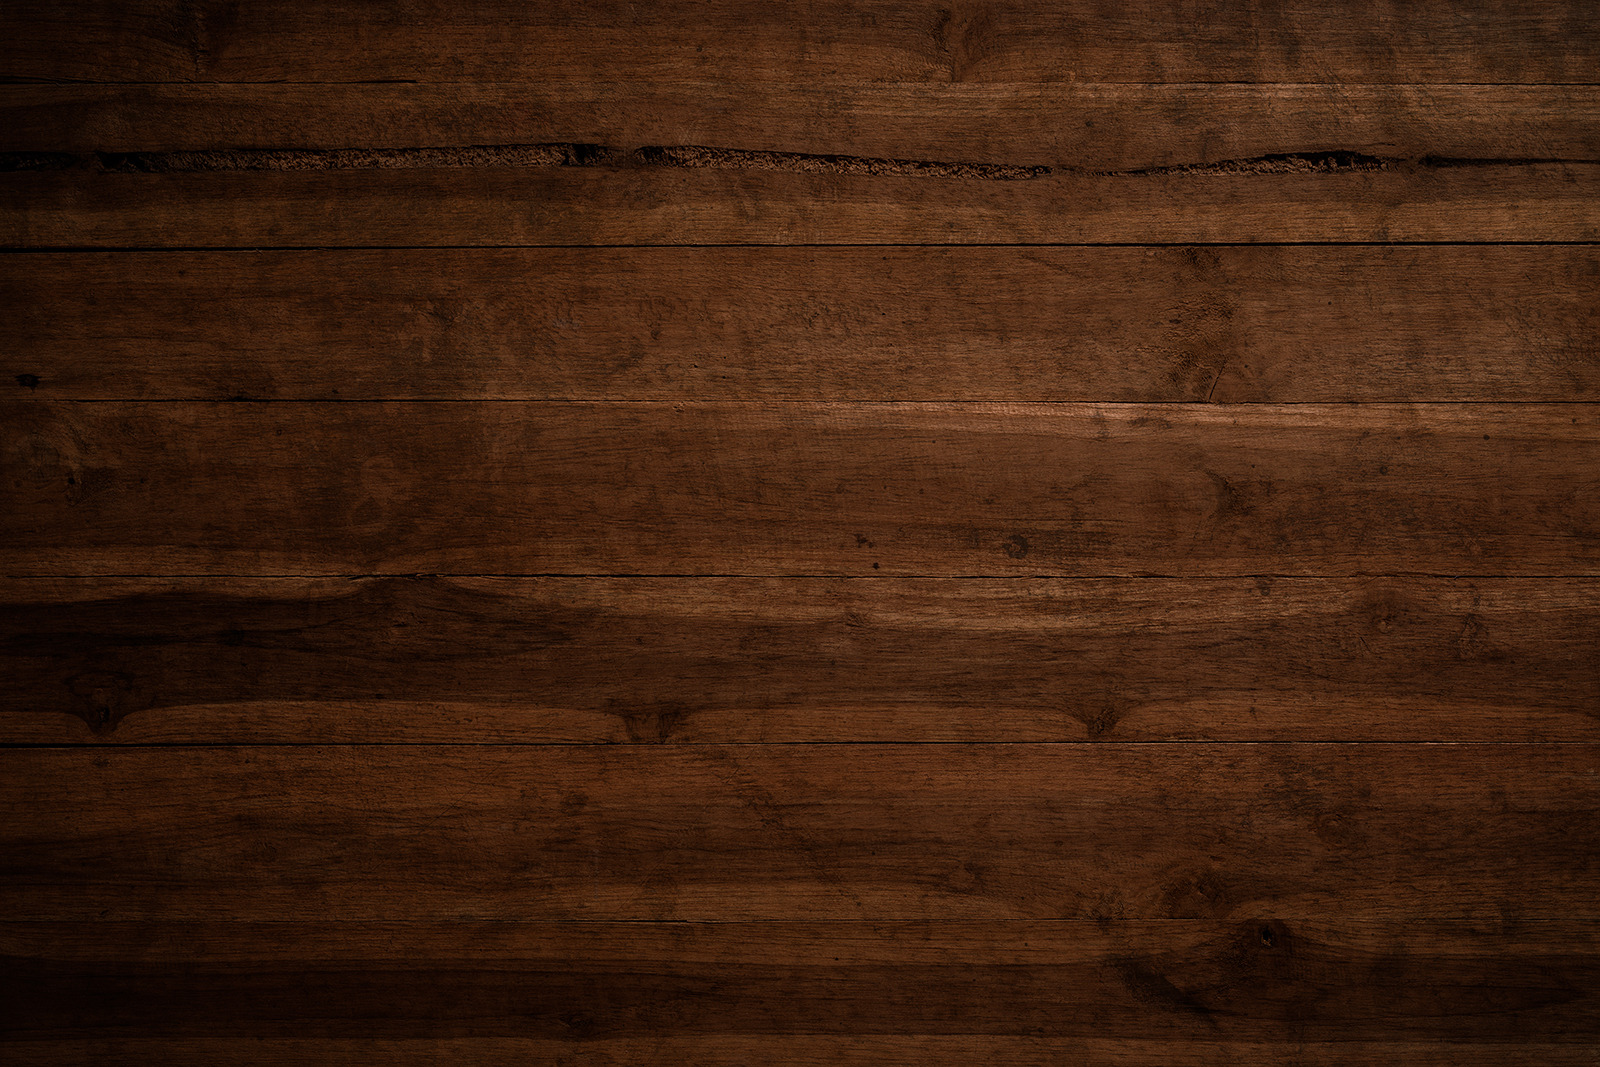 Old grunge dark textured wooden background,The surface of the ol